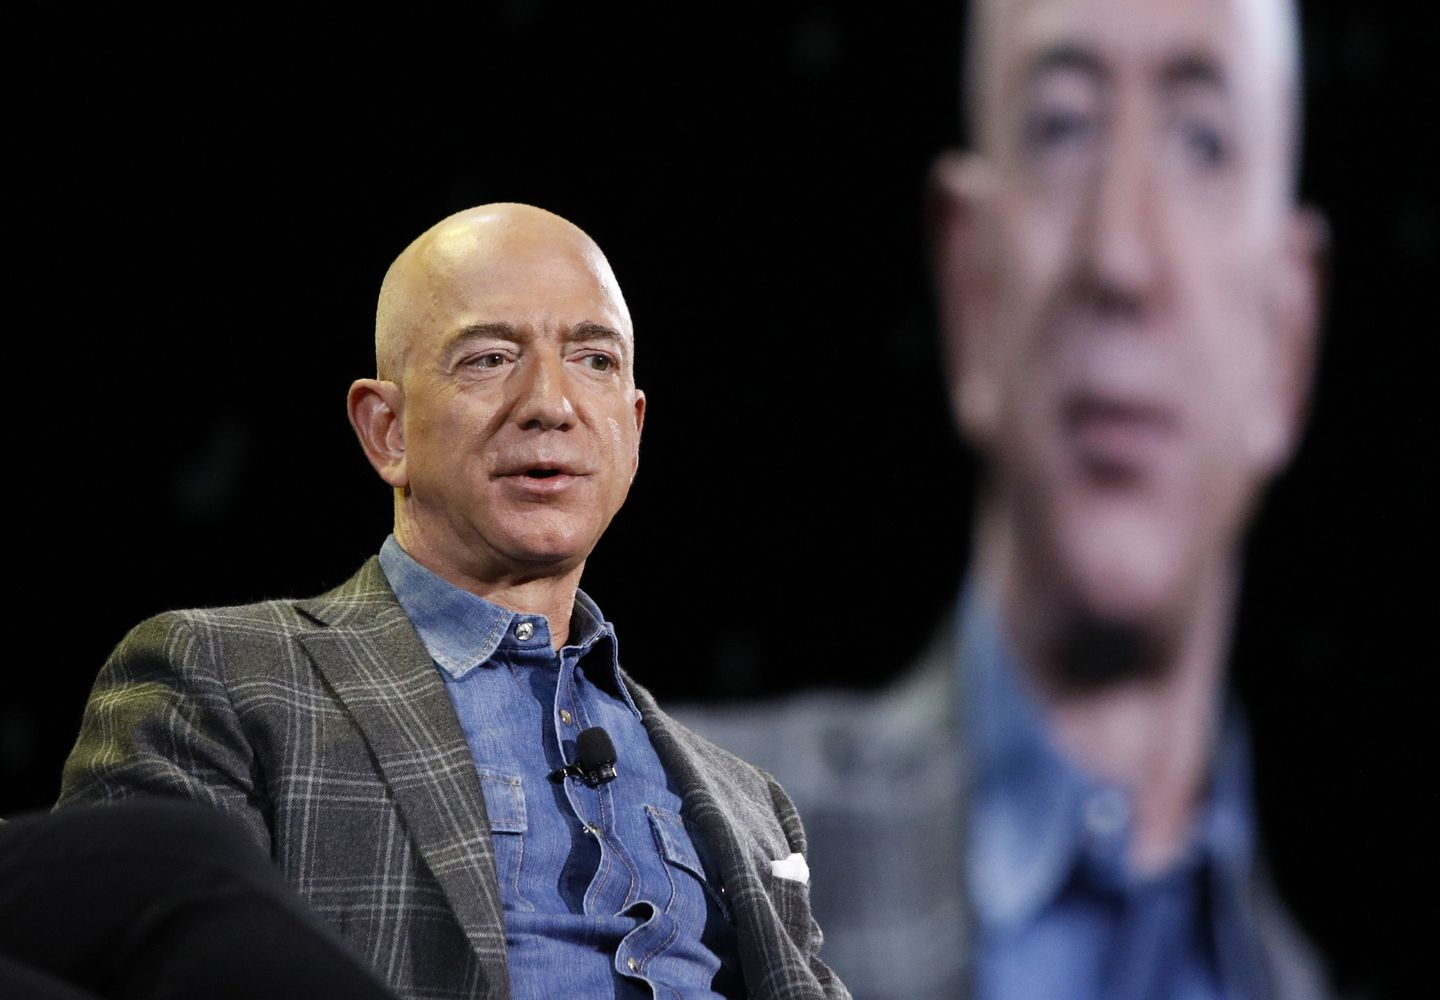 Winning auction bid to fly in space with Jeff Bezos: $28M